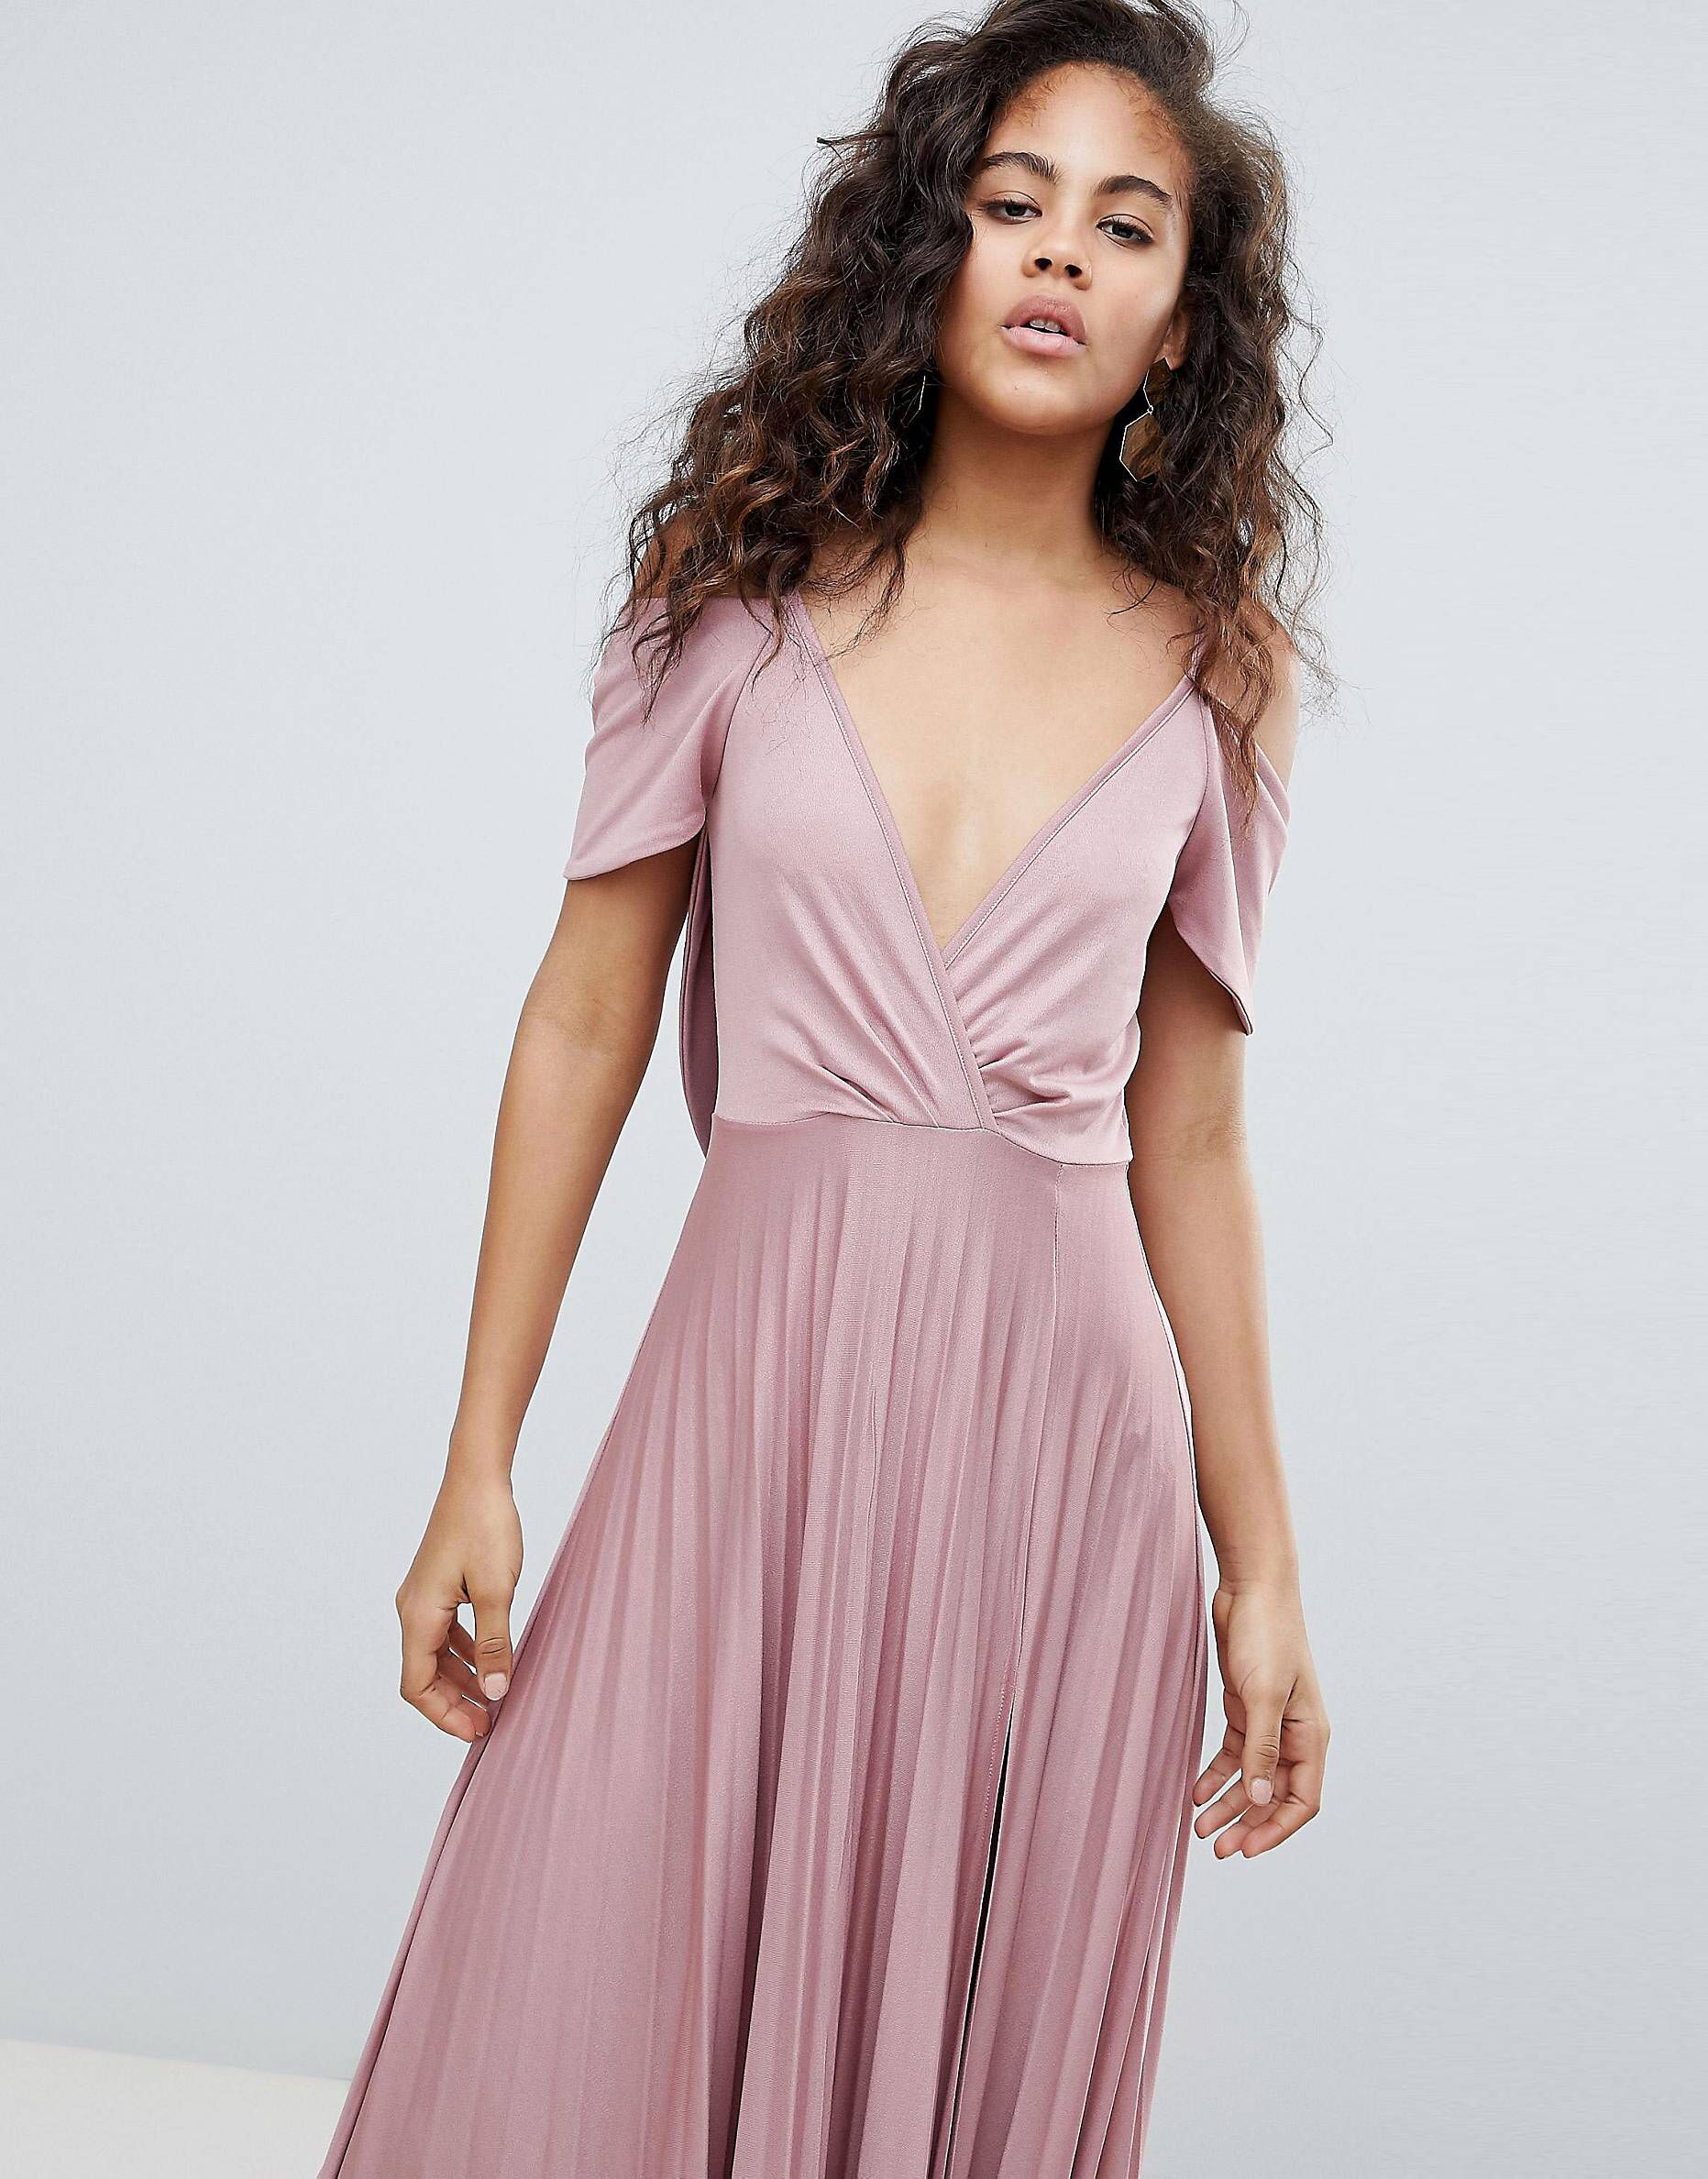 Design tall cold shoulder cowl back pleated maxi dress in